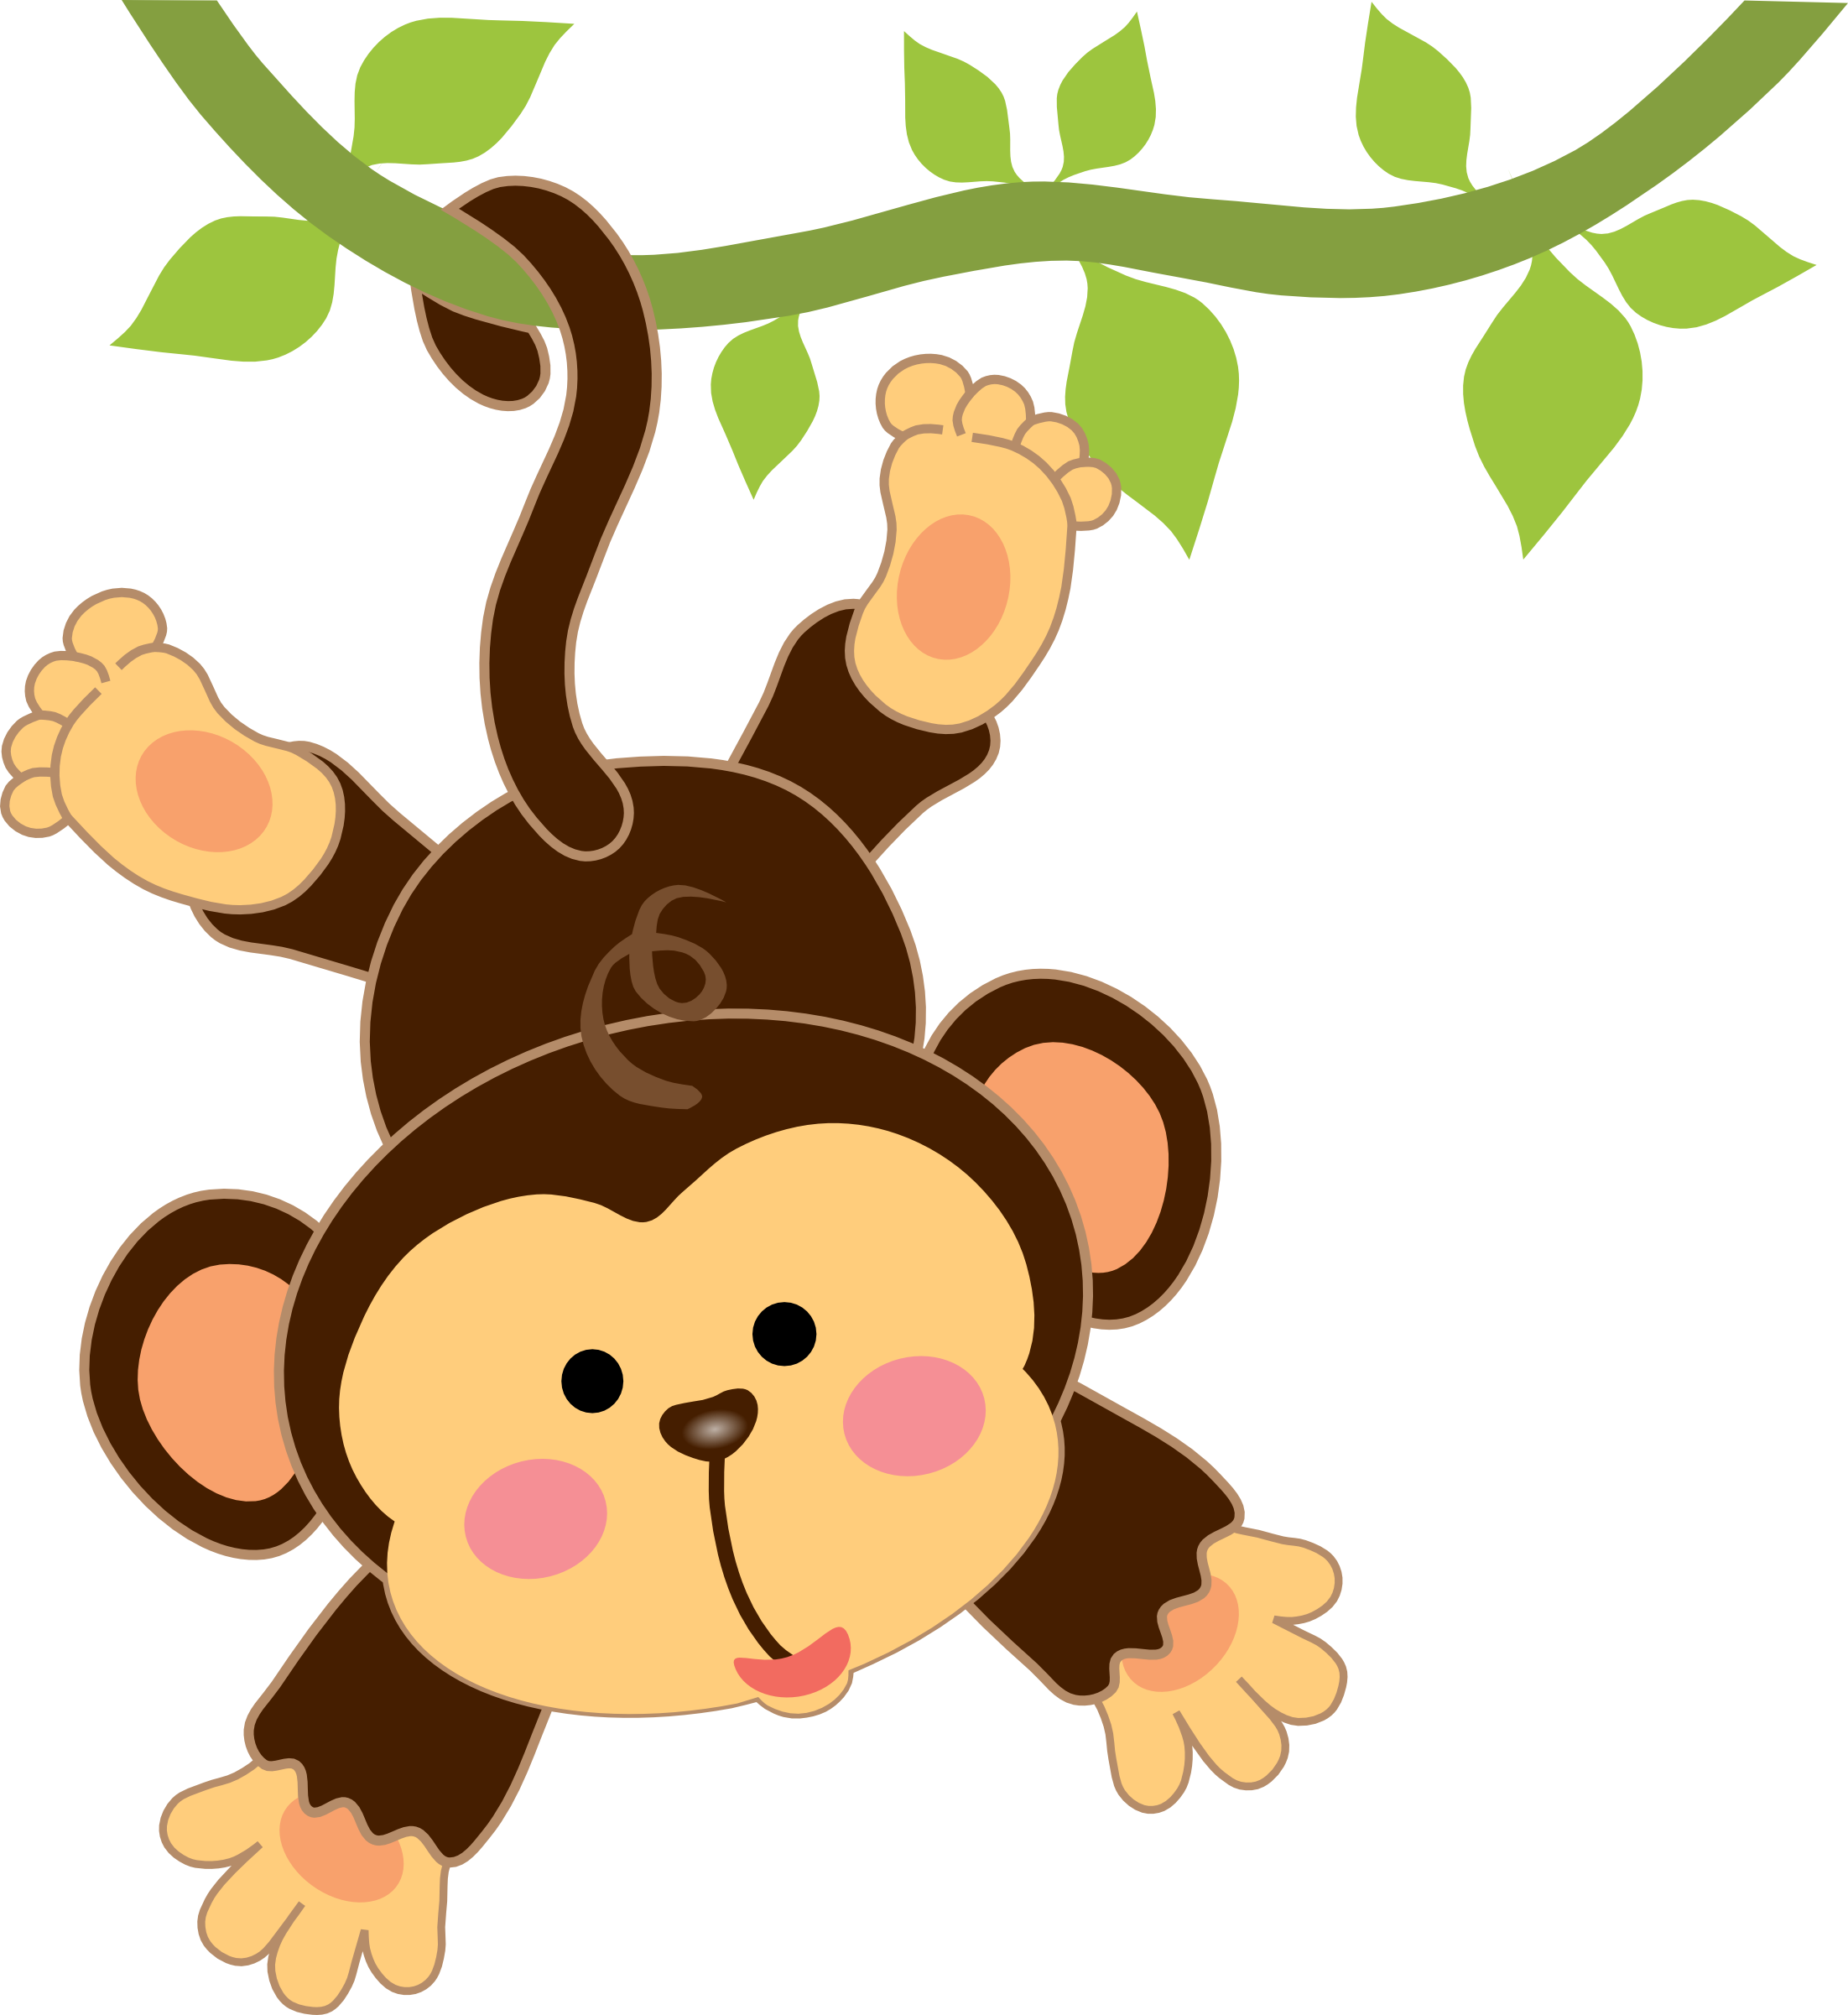 Tree clipart monkey. Photo by daniellemoraesfalcao minus